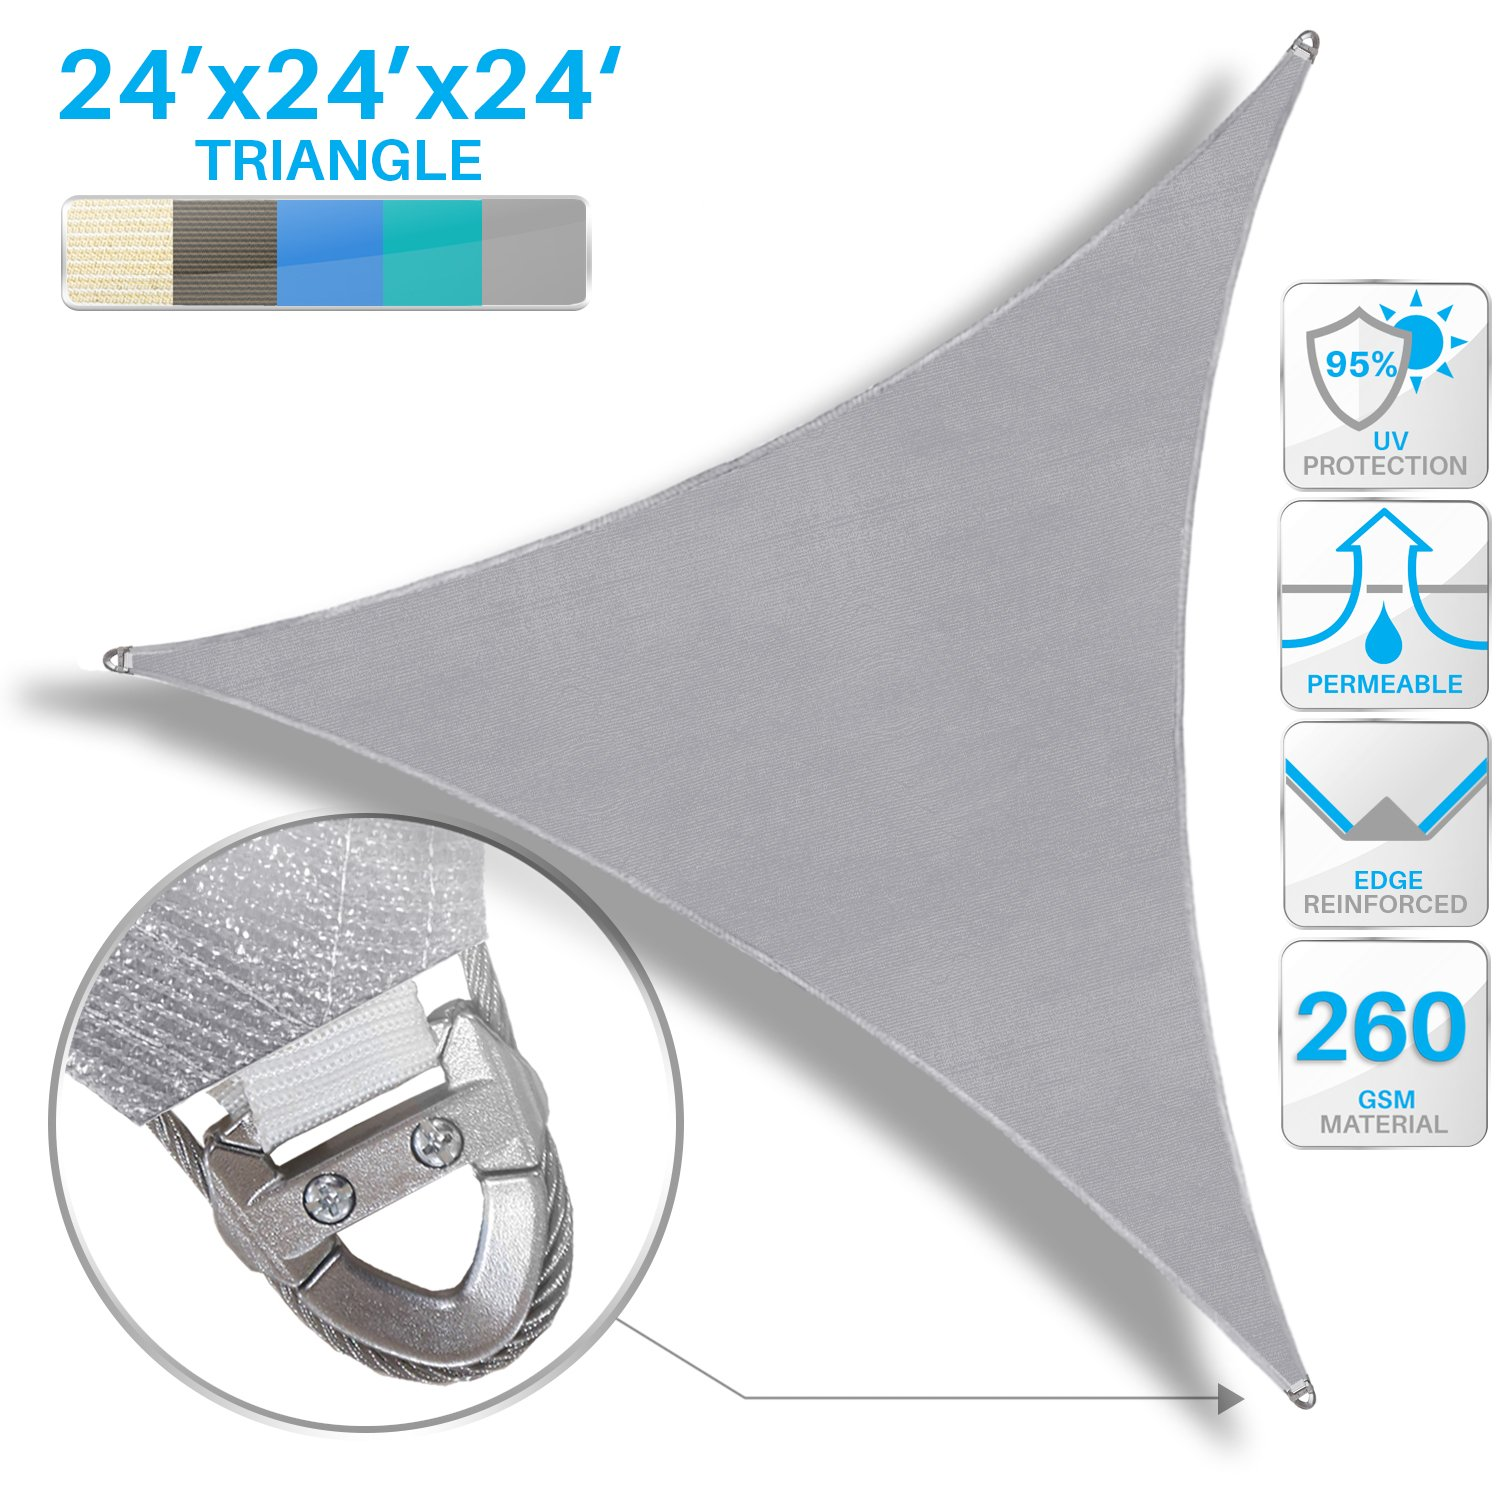 Patio Large Sun Shade Sail 24' x 24' x 24' Equilateral triangle Heavy Duty Strengthen Durable Outdoor Canopy UV Block Fabric A-Ring Design Metal Spring Reinforcement 7 Year Warranty -Light Gray by Patio Paradise